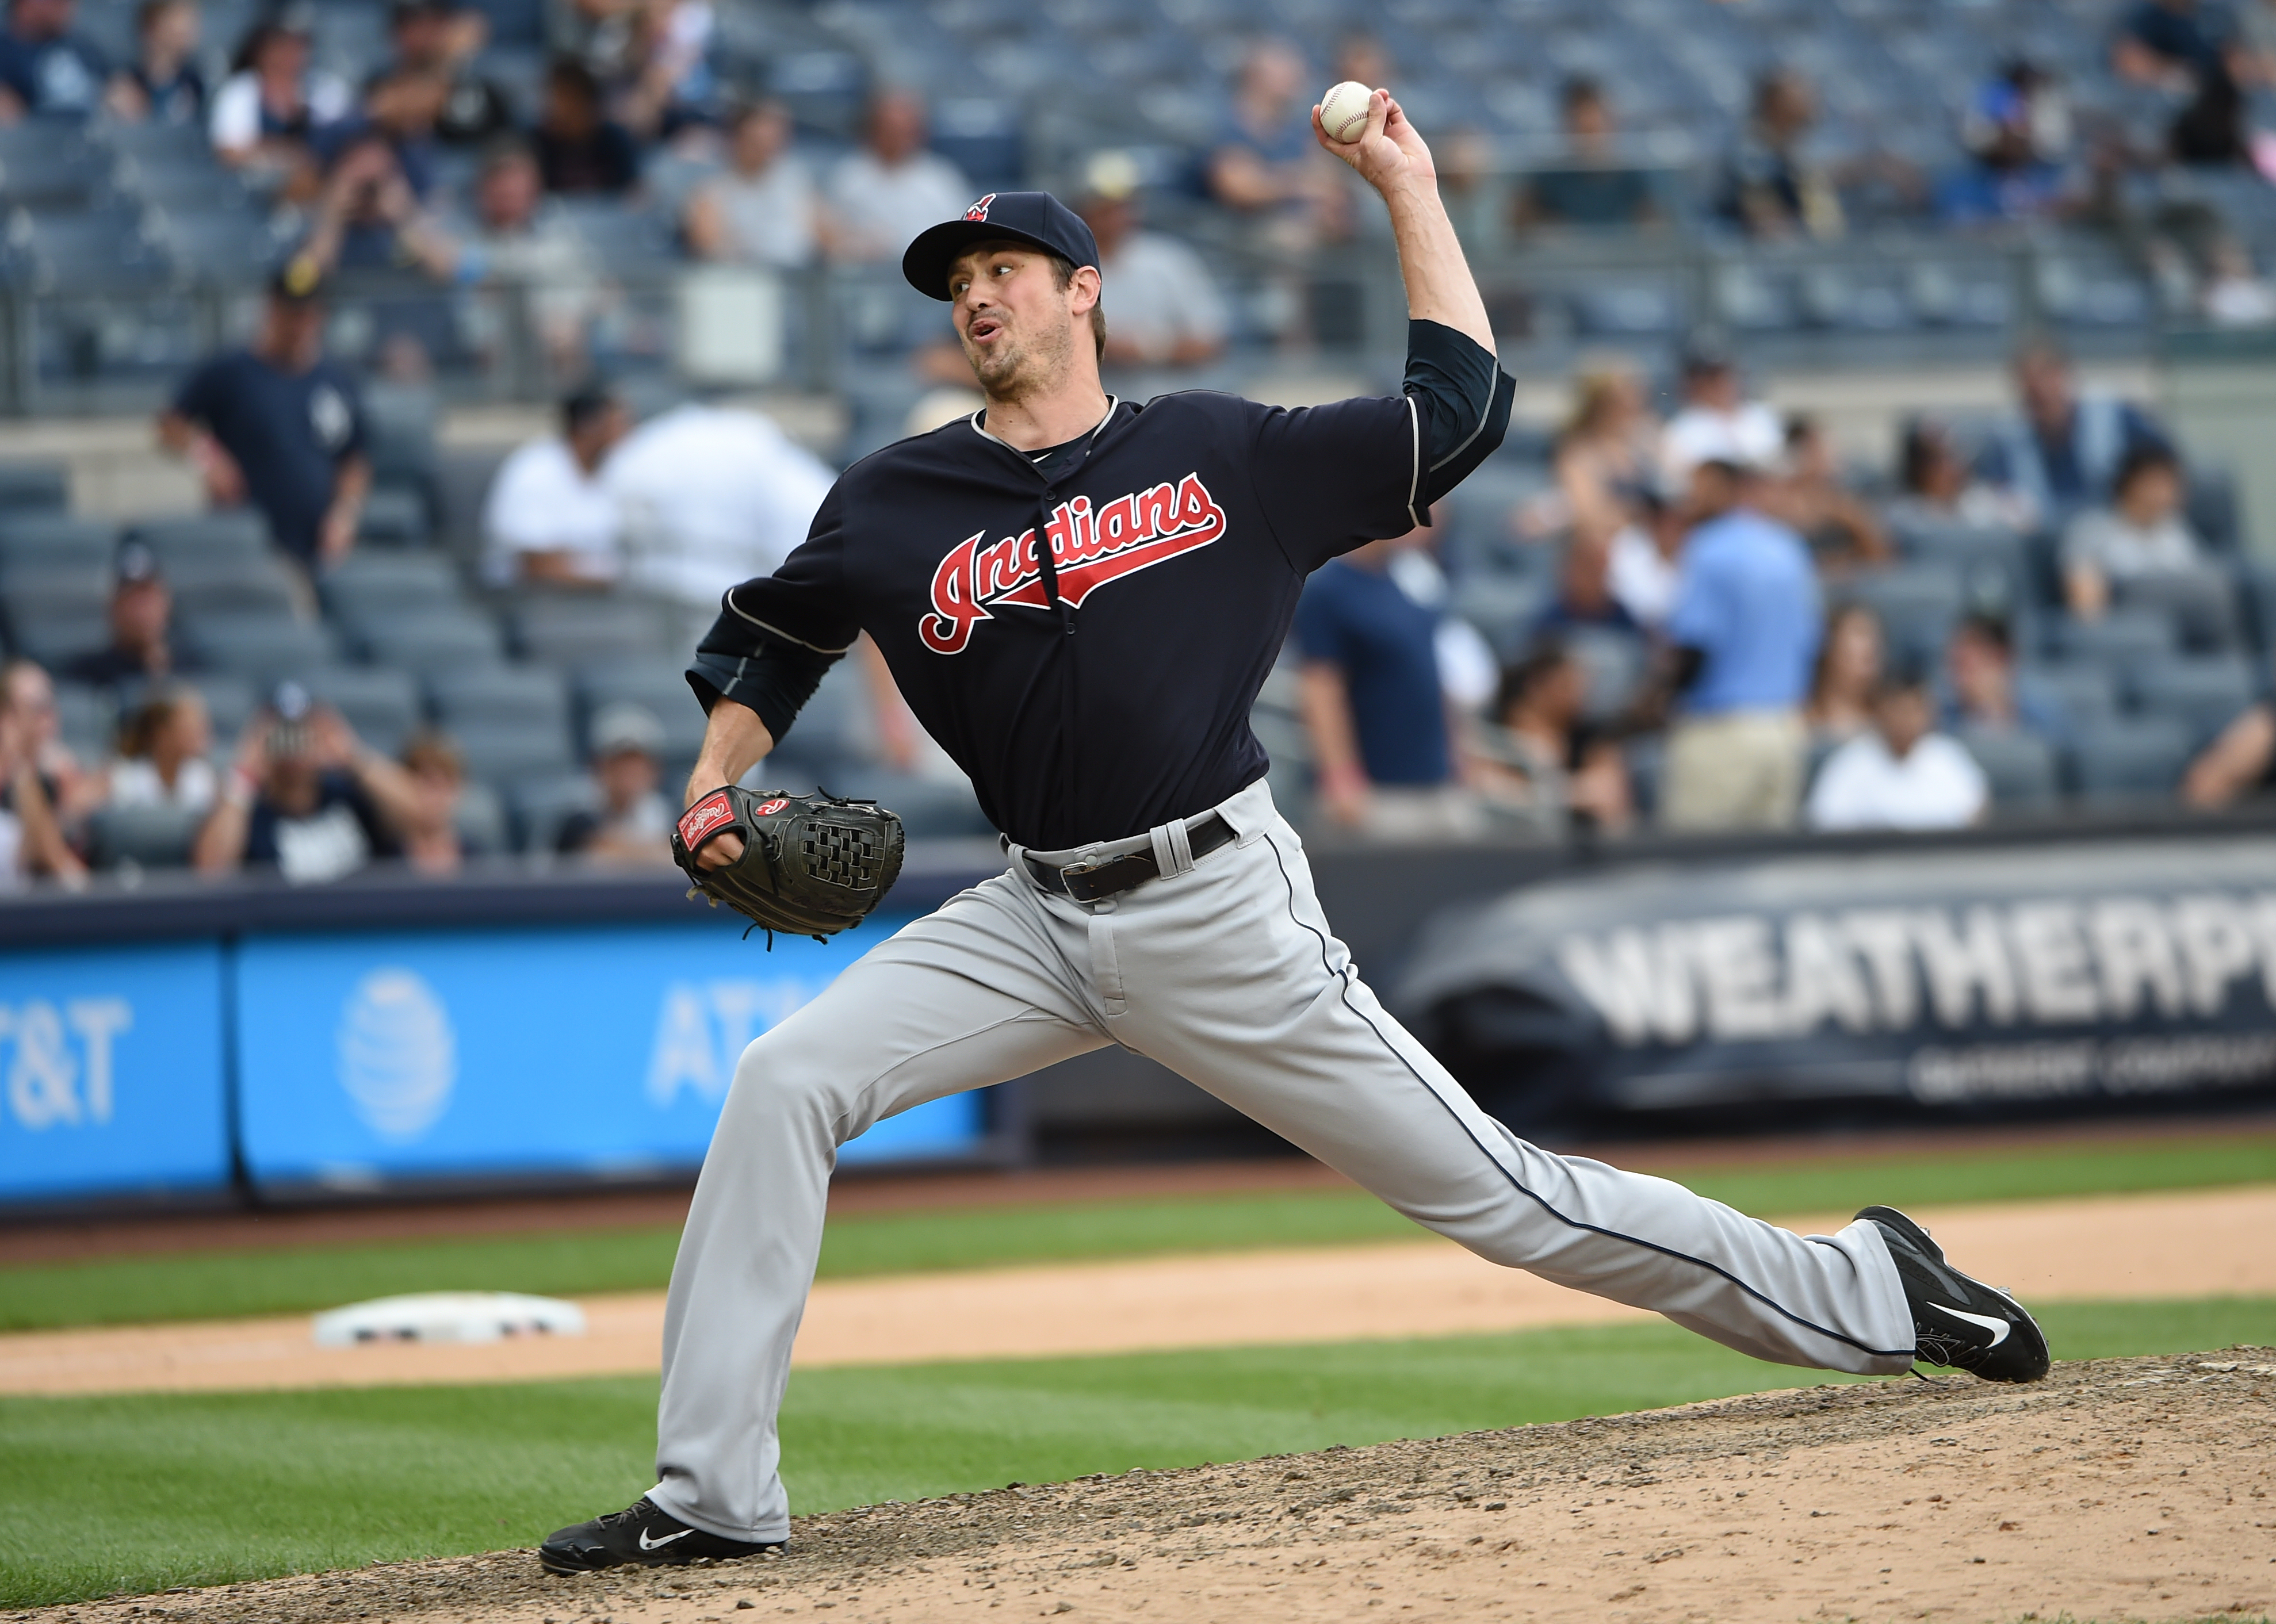 Cleveland Indians reliever Andrew Miller pitches against the New York Yankees in the ninth inning of a baseball game, Saturday, Aug. 6, 2016, in New York. The Indians won 5-2. (AP Photo/Kathy Kmonicek)